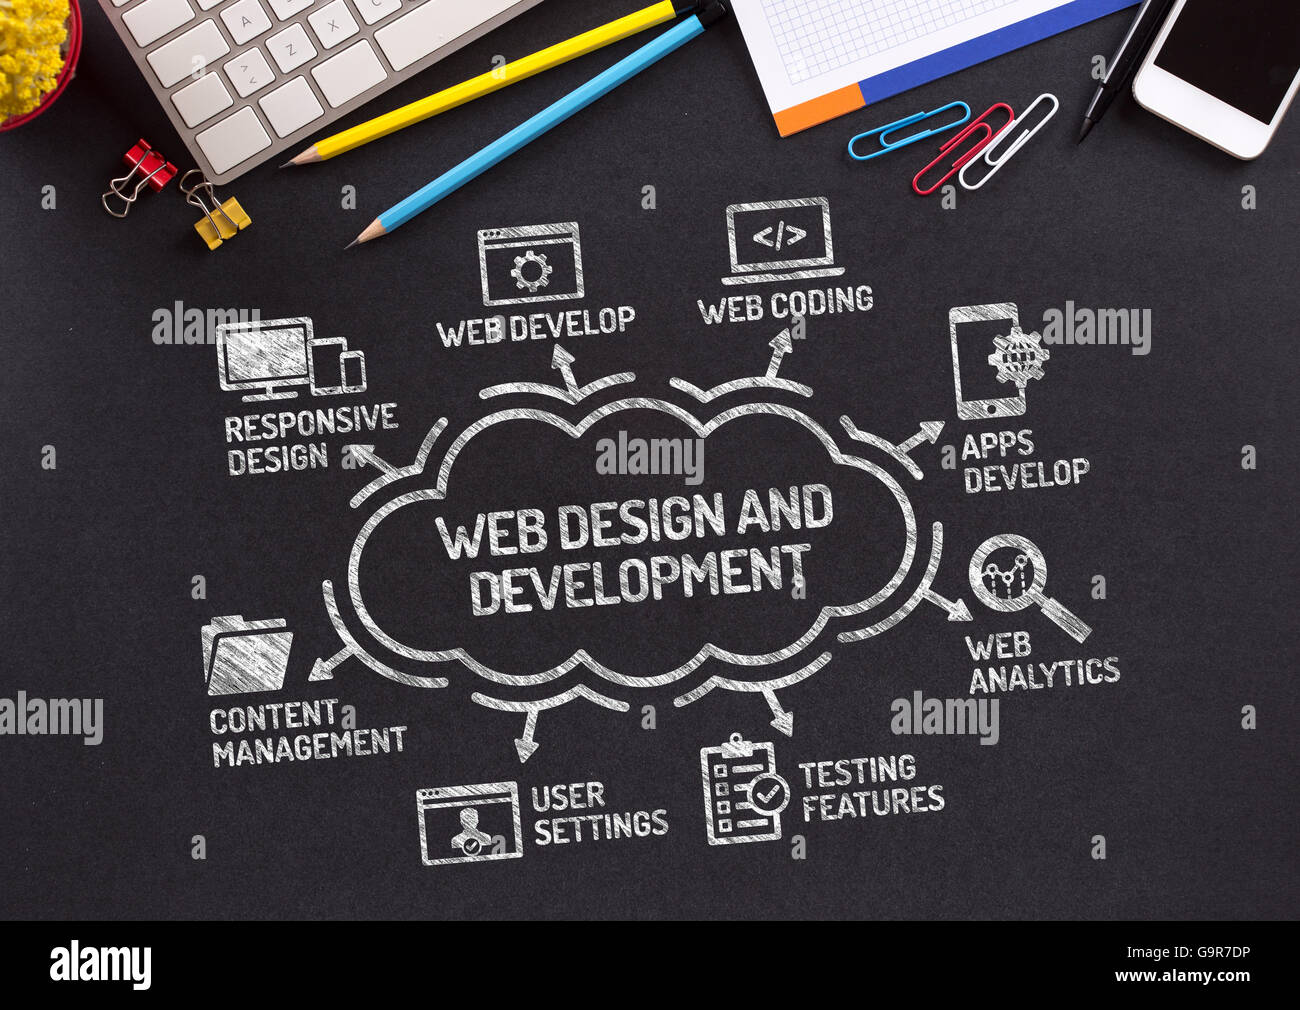 Web Design And Development Chart With Keywords And Icons On Stock Photo Alamy